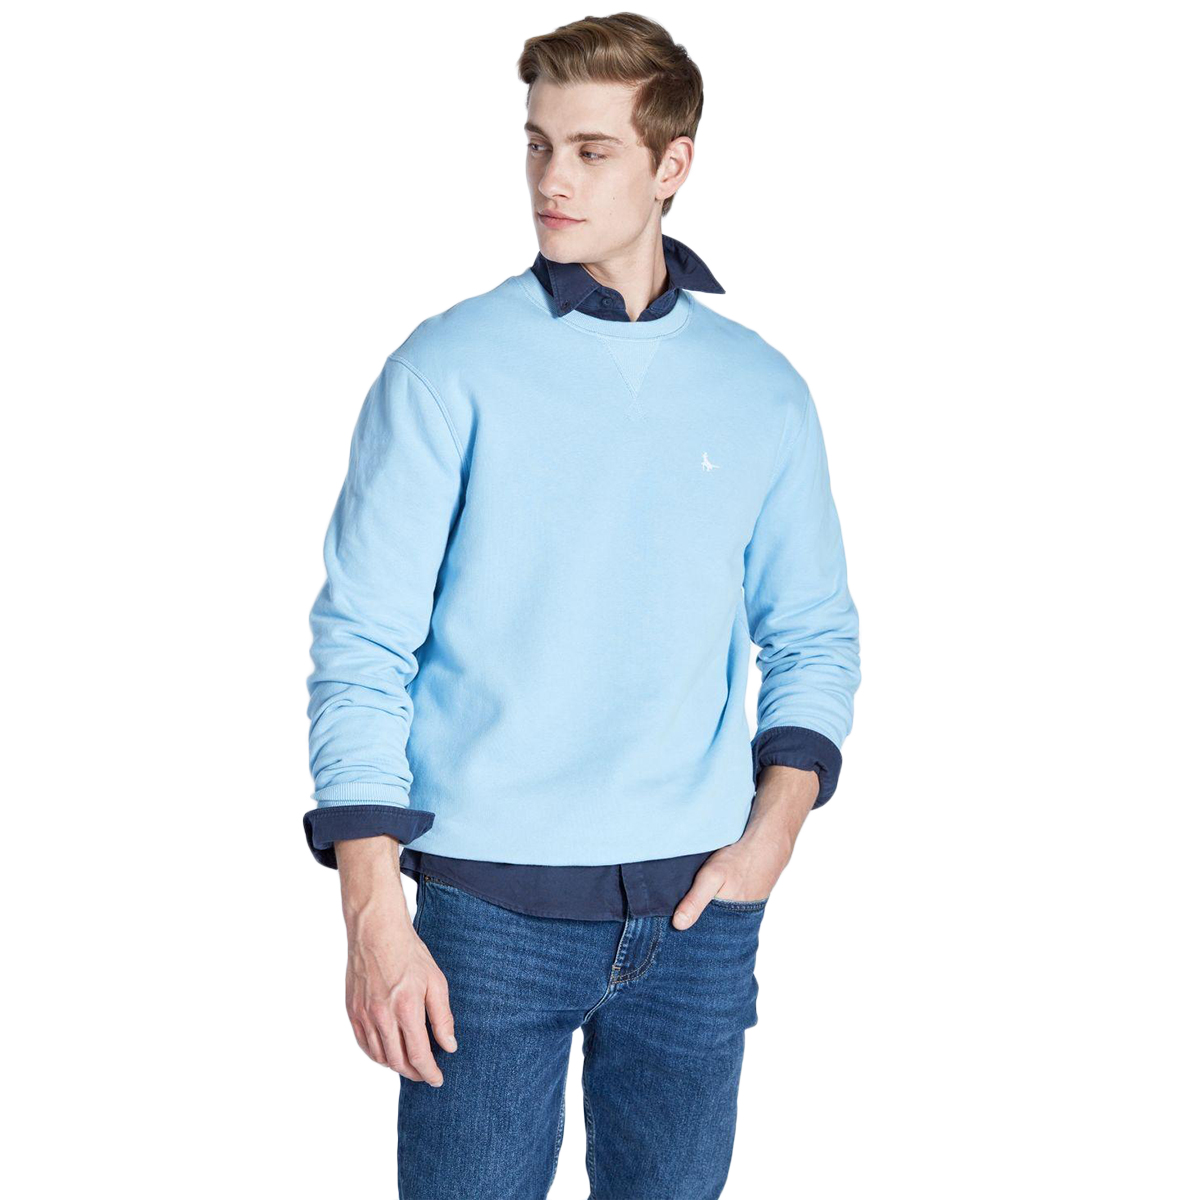 Jack Wills Men's Belvue Pheasant Sweatshirt - Blue, L